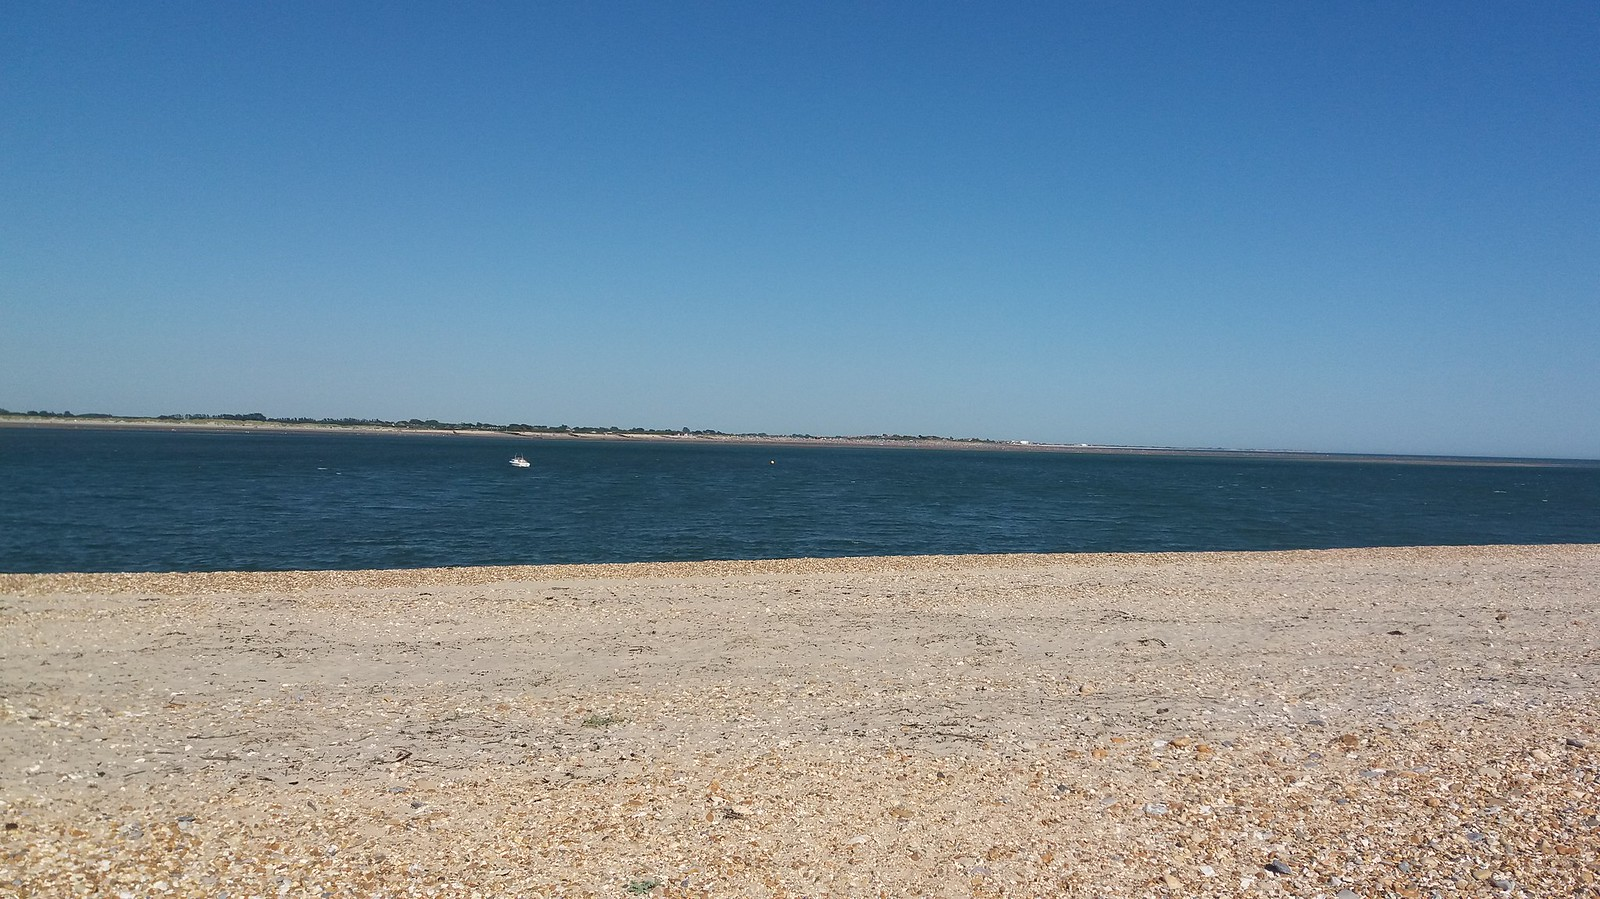 20160719_170721 Eastoke Point, looking across Chicjester harbour entrance towards West Wittering